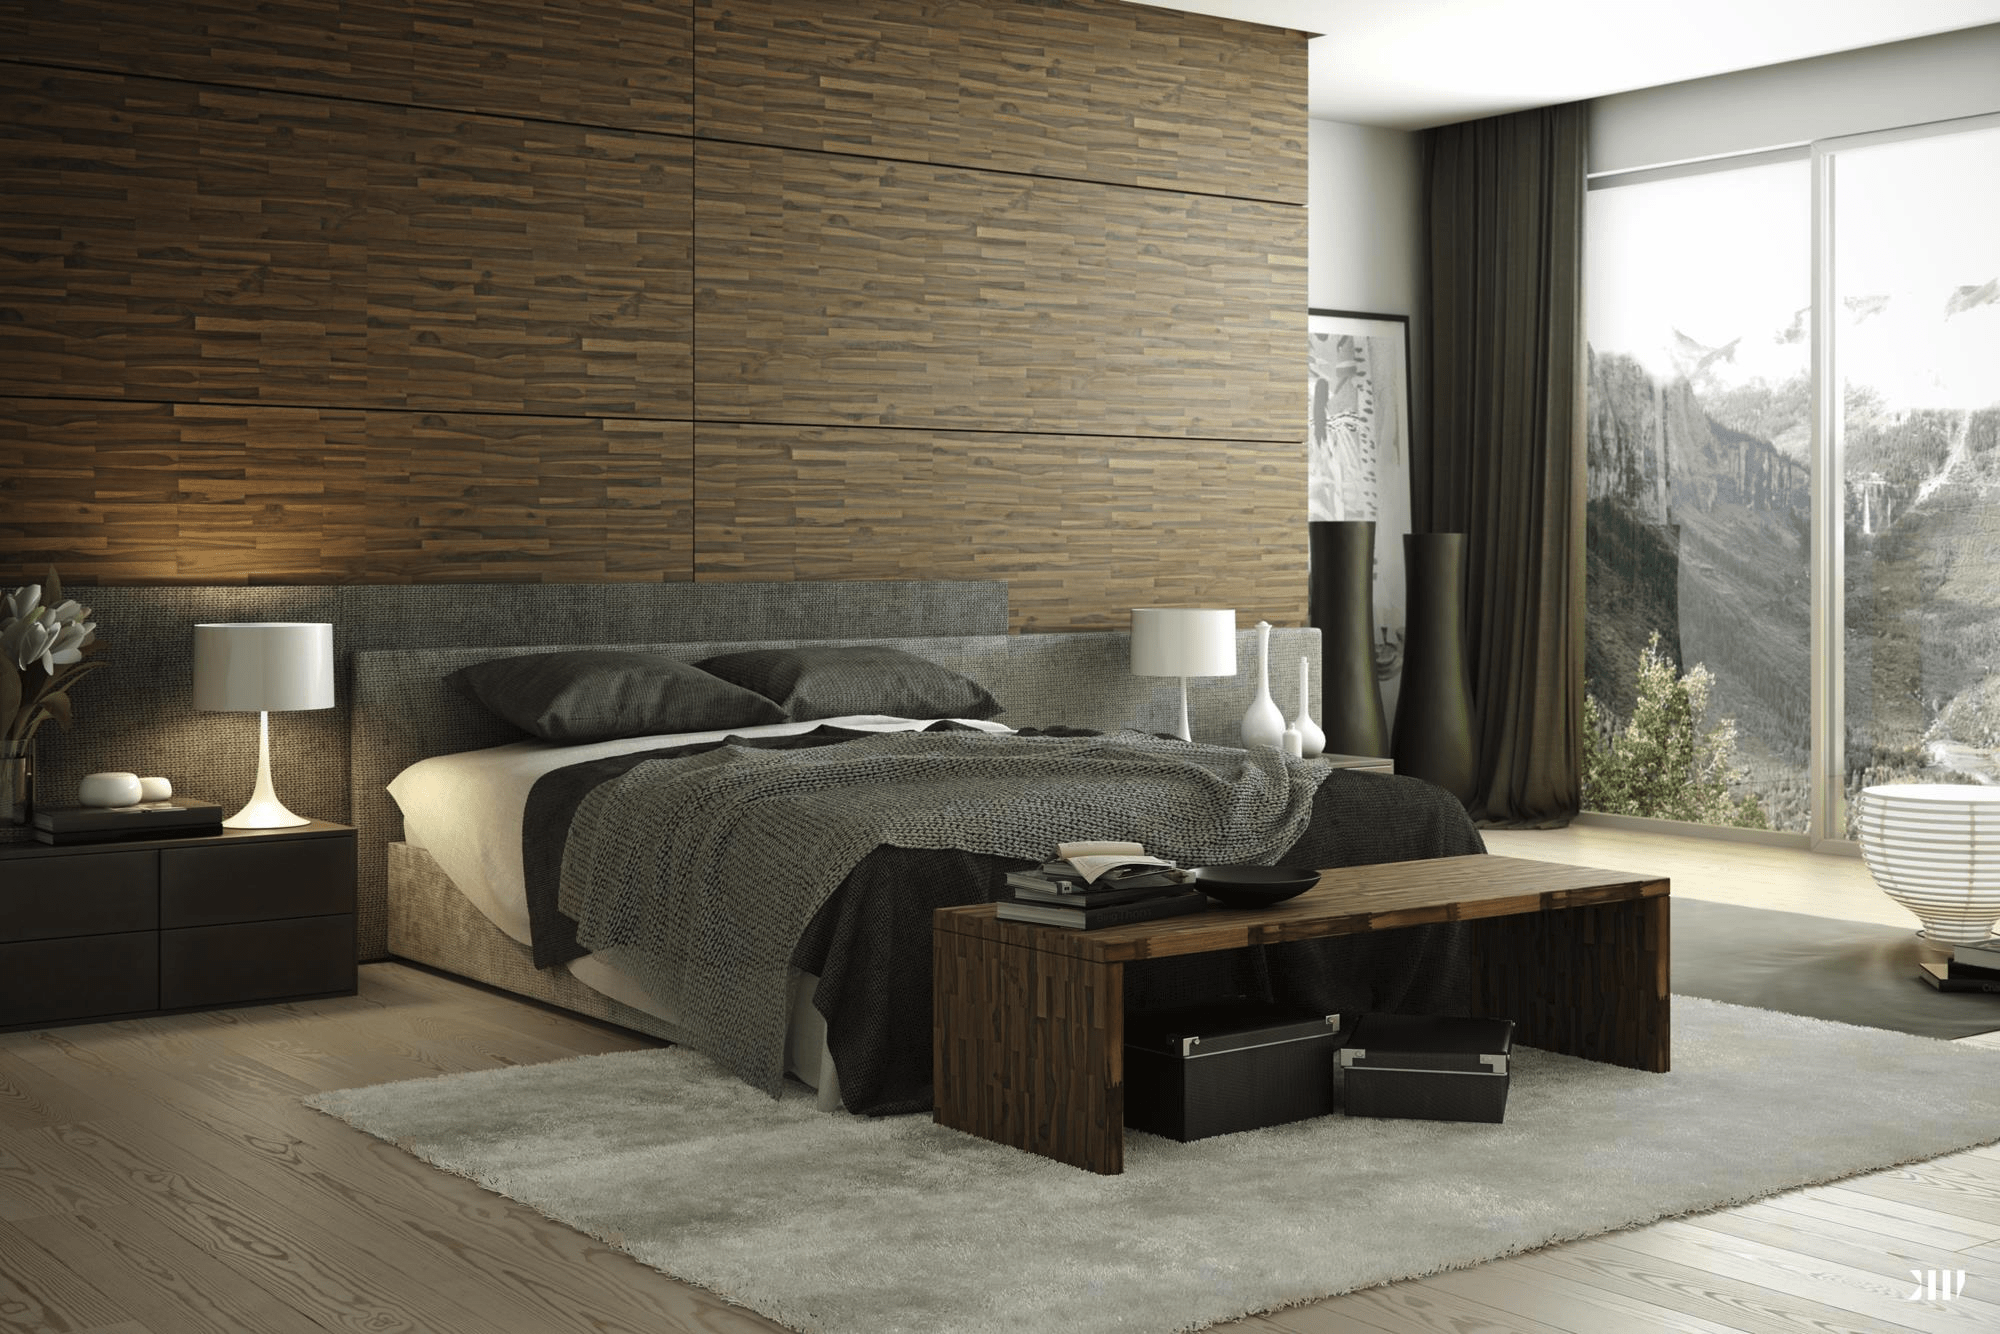 Mooiste Slaapkamer Beautiful Bedrooms Perfect For Lounging All Day